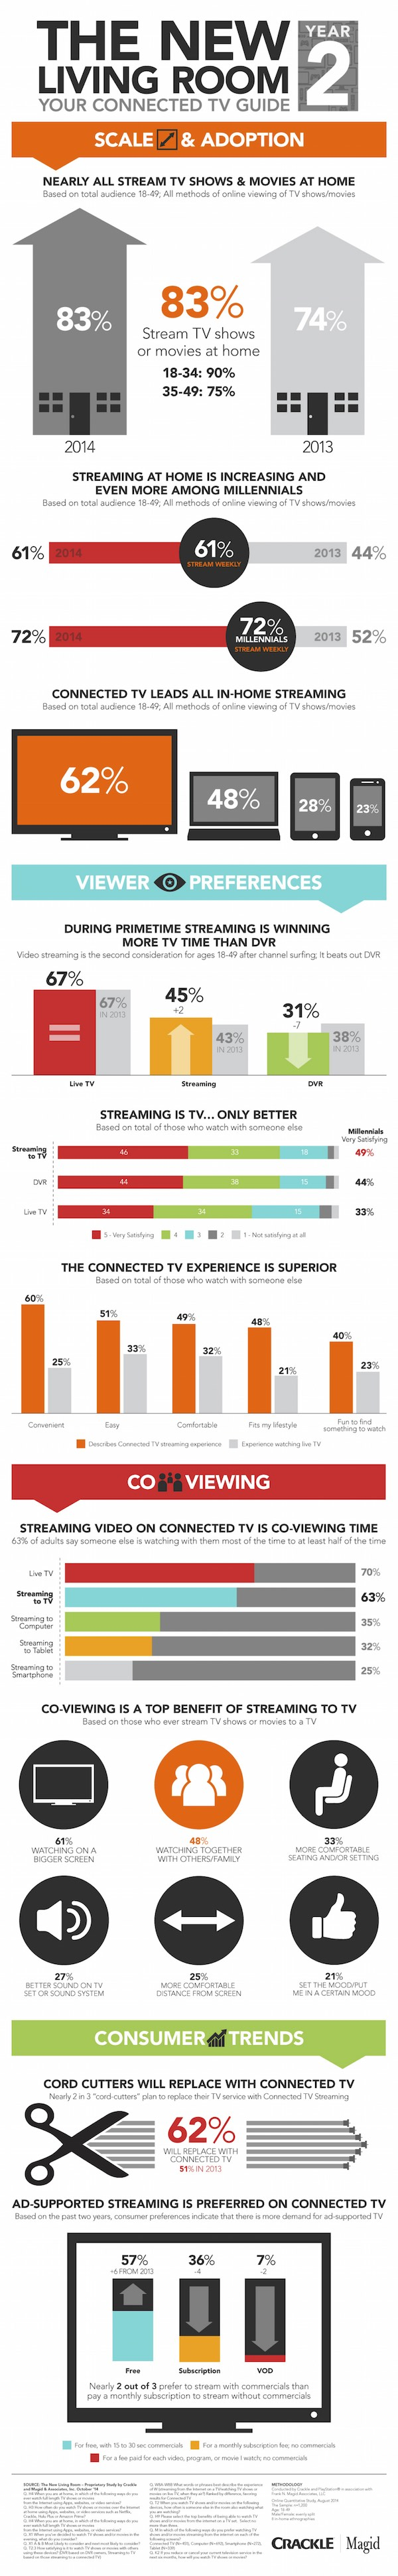 Connected TV survey